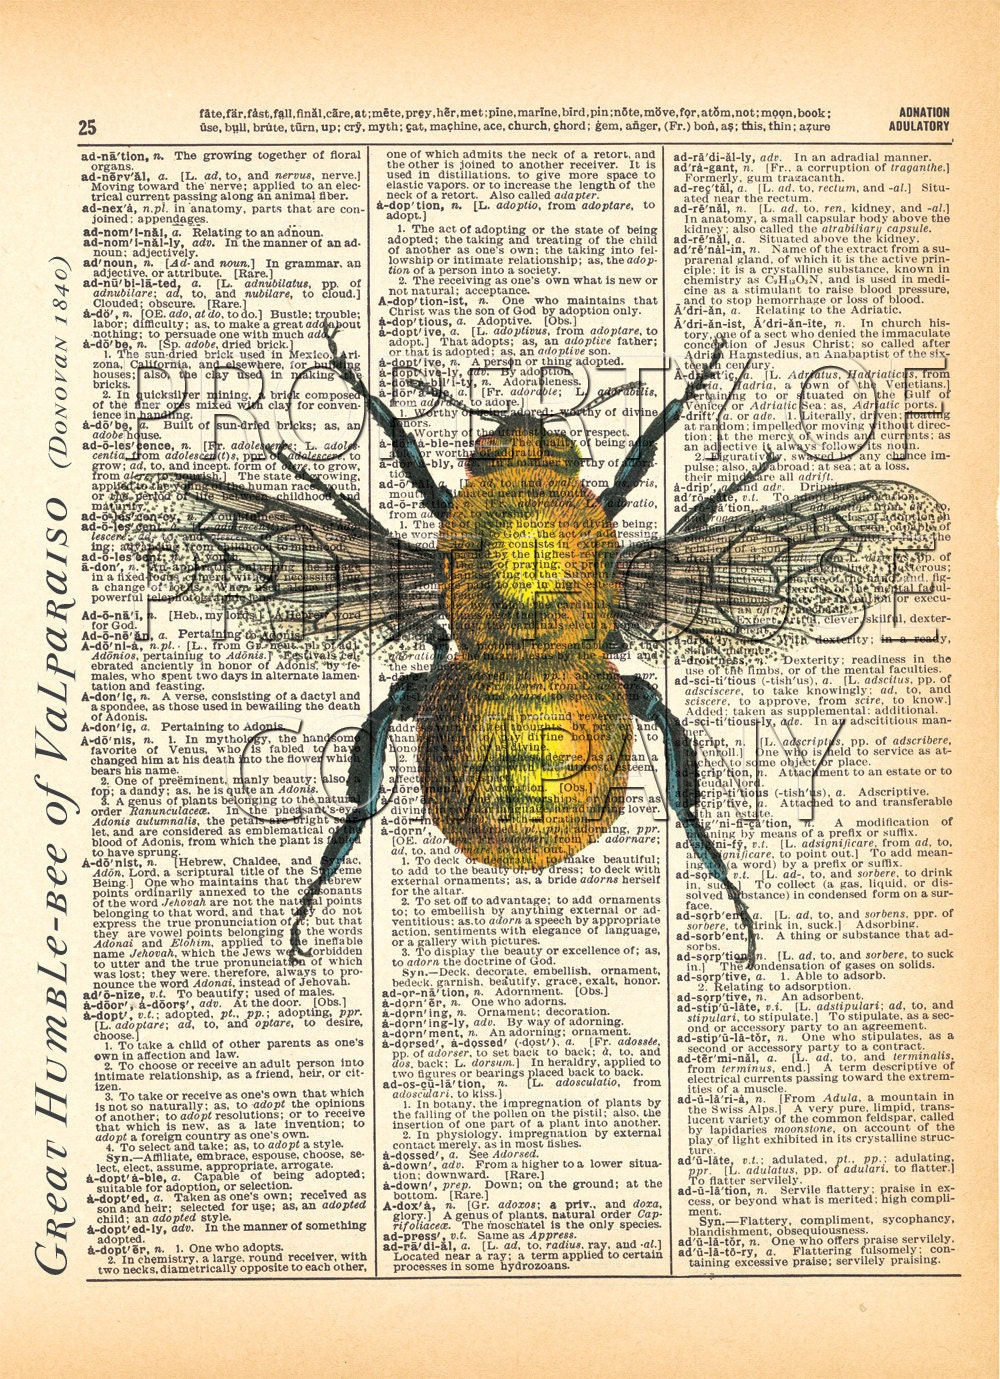 bumble bee insect 1800 u0027s illustration printed on an